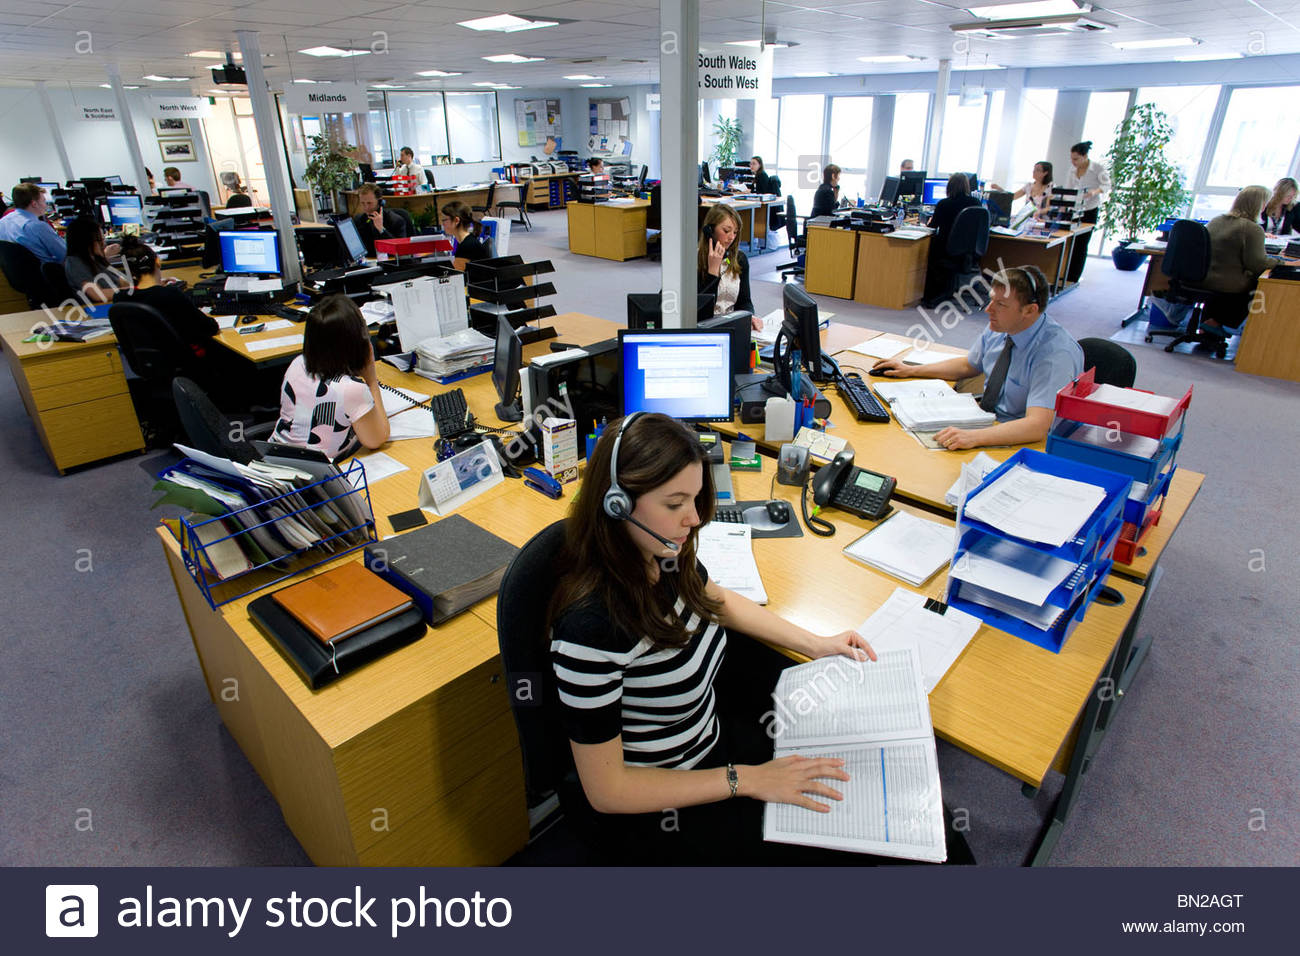 Sales people working at desks in call center office - Stock Image